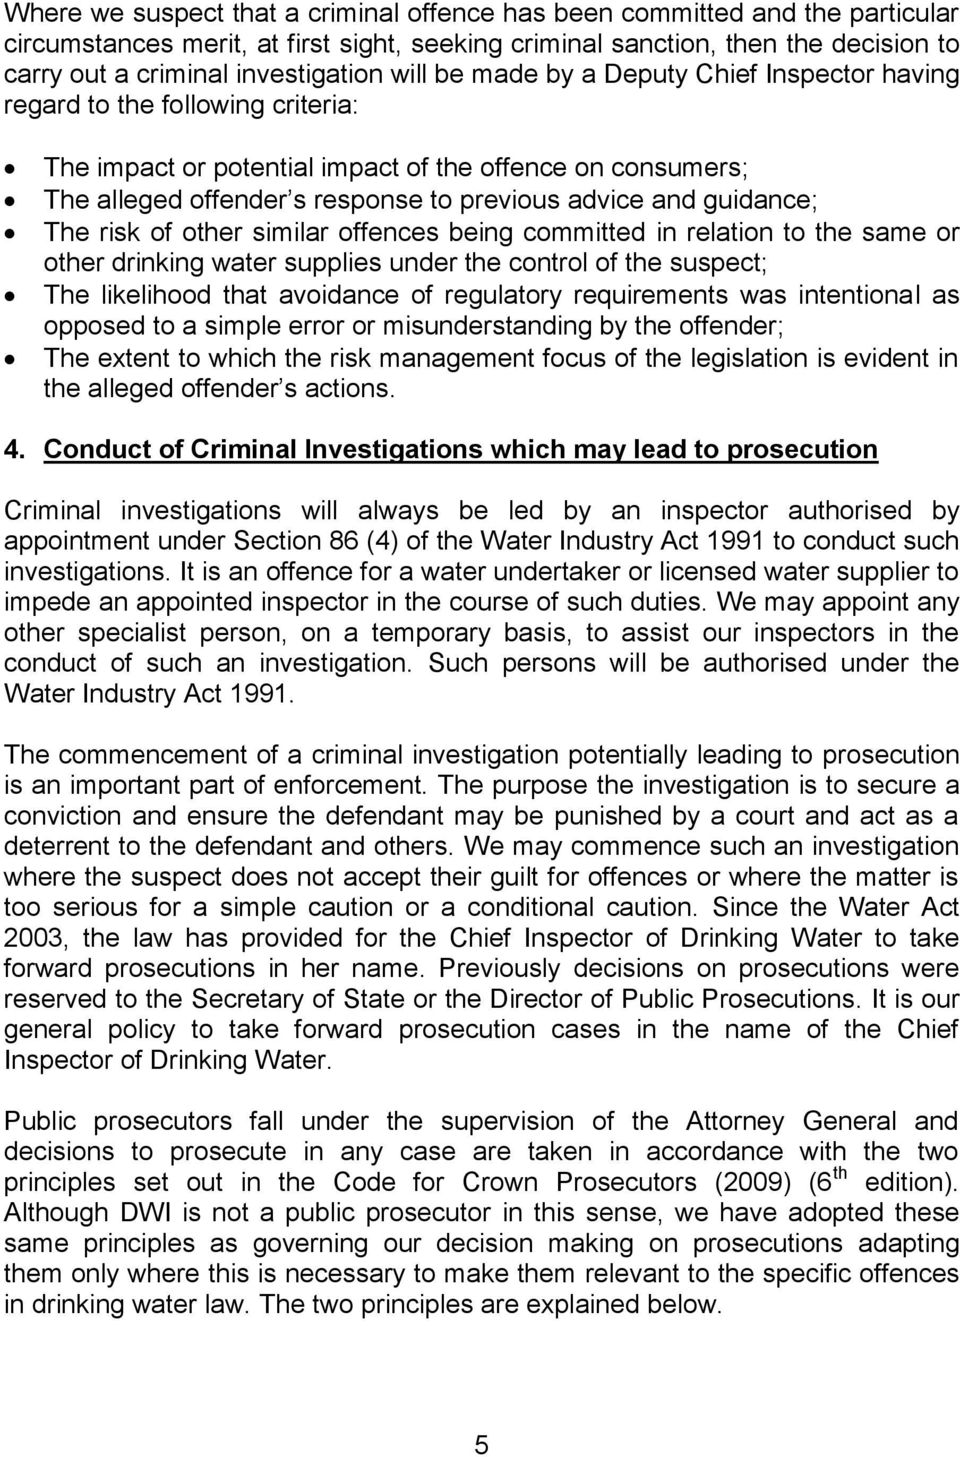 guidance; The risk of other similar offences being committed in relation to the same or other drinking water supplies under the control of the suspect; The likelihood that avoidance of regulatory